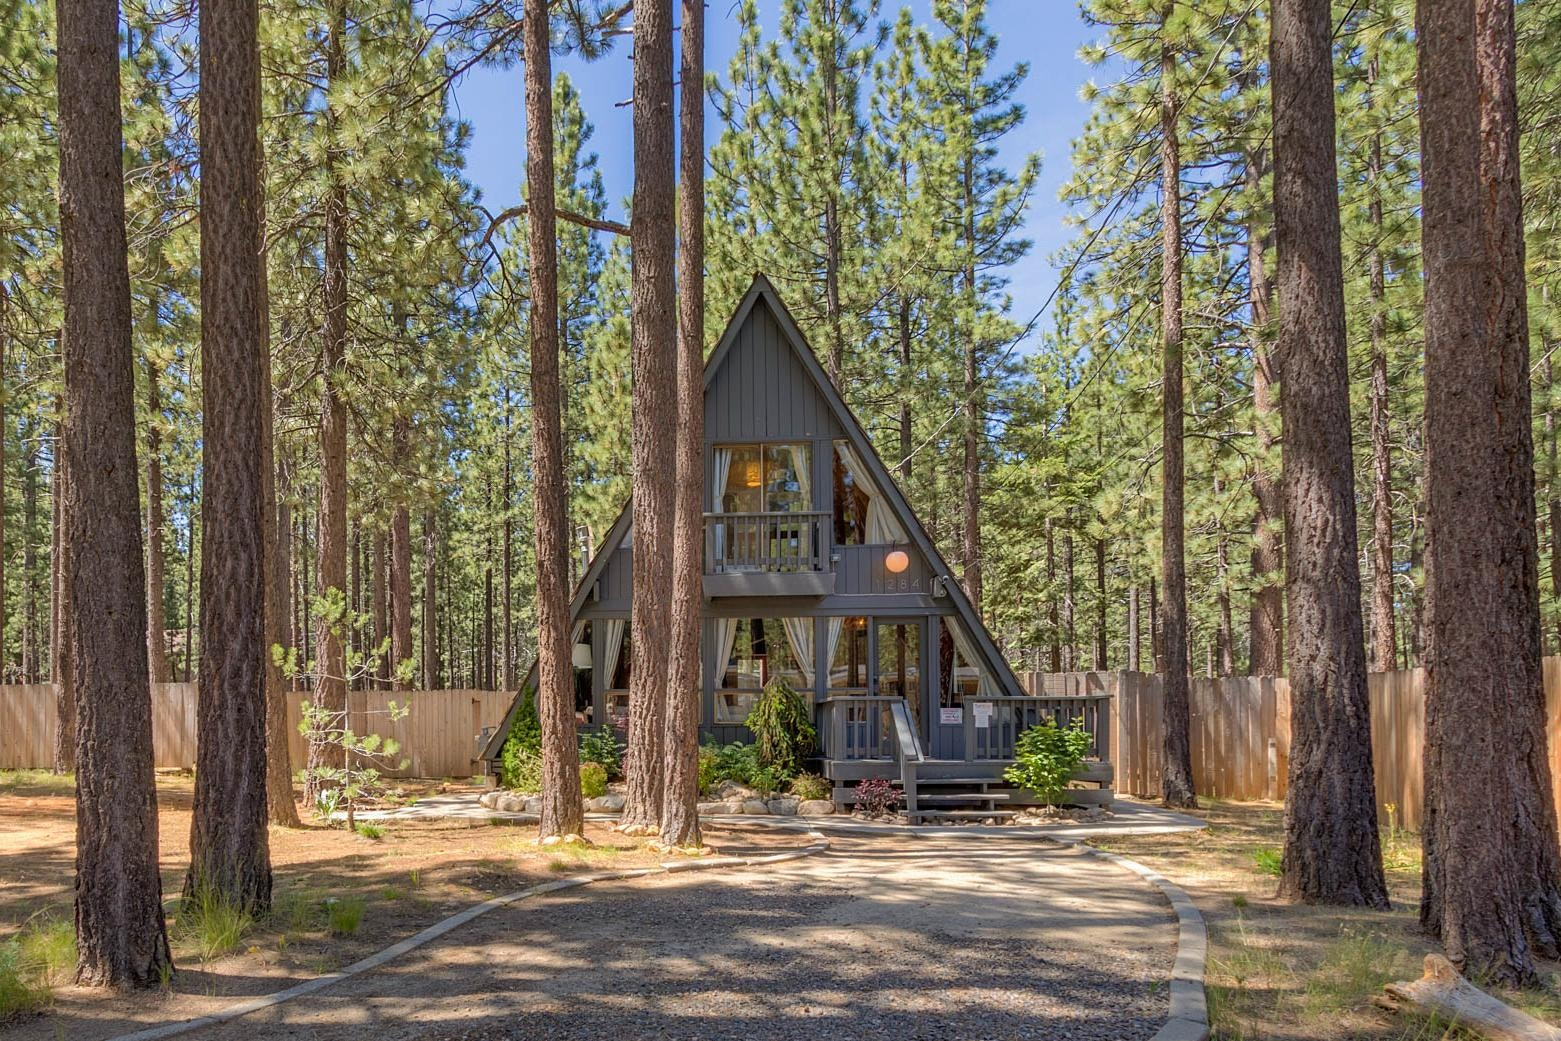 A classic A-frame cabin with modern, playful interior touches.